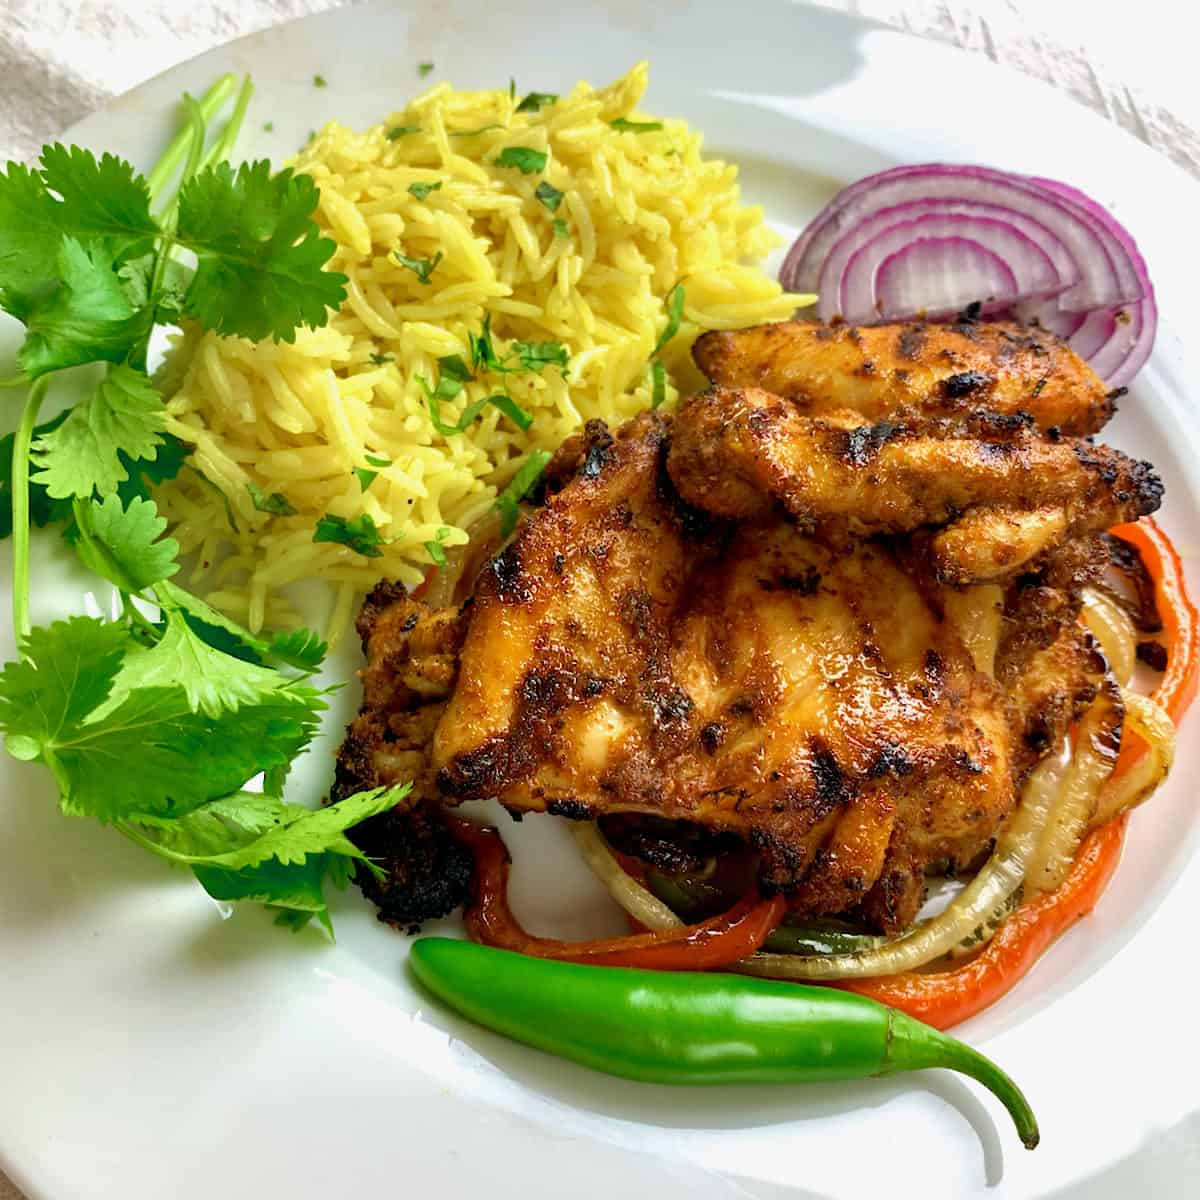 Skinless, boneless tandoori chicken thighs on a bed of bell peppers with a side of turmeric yellow rice.